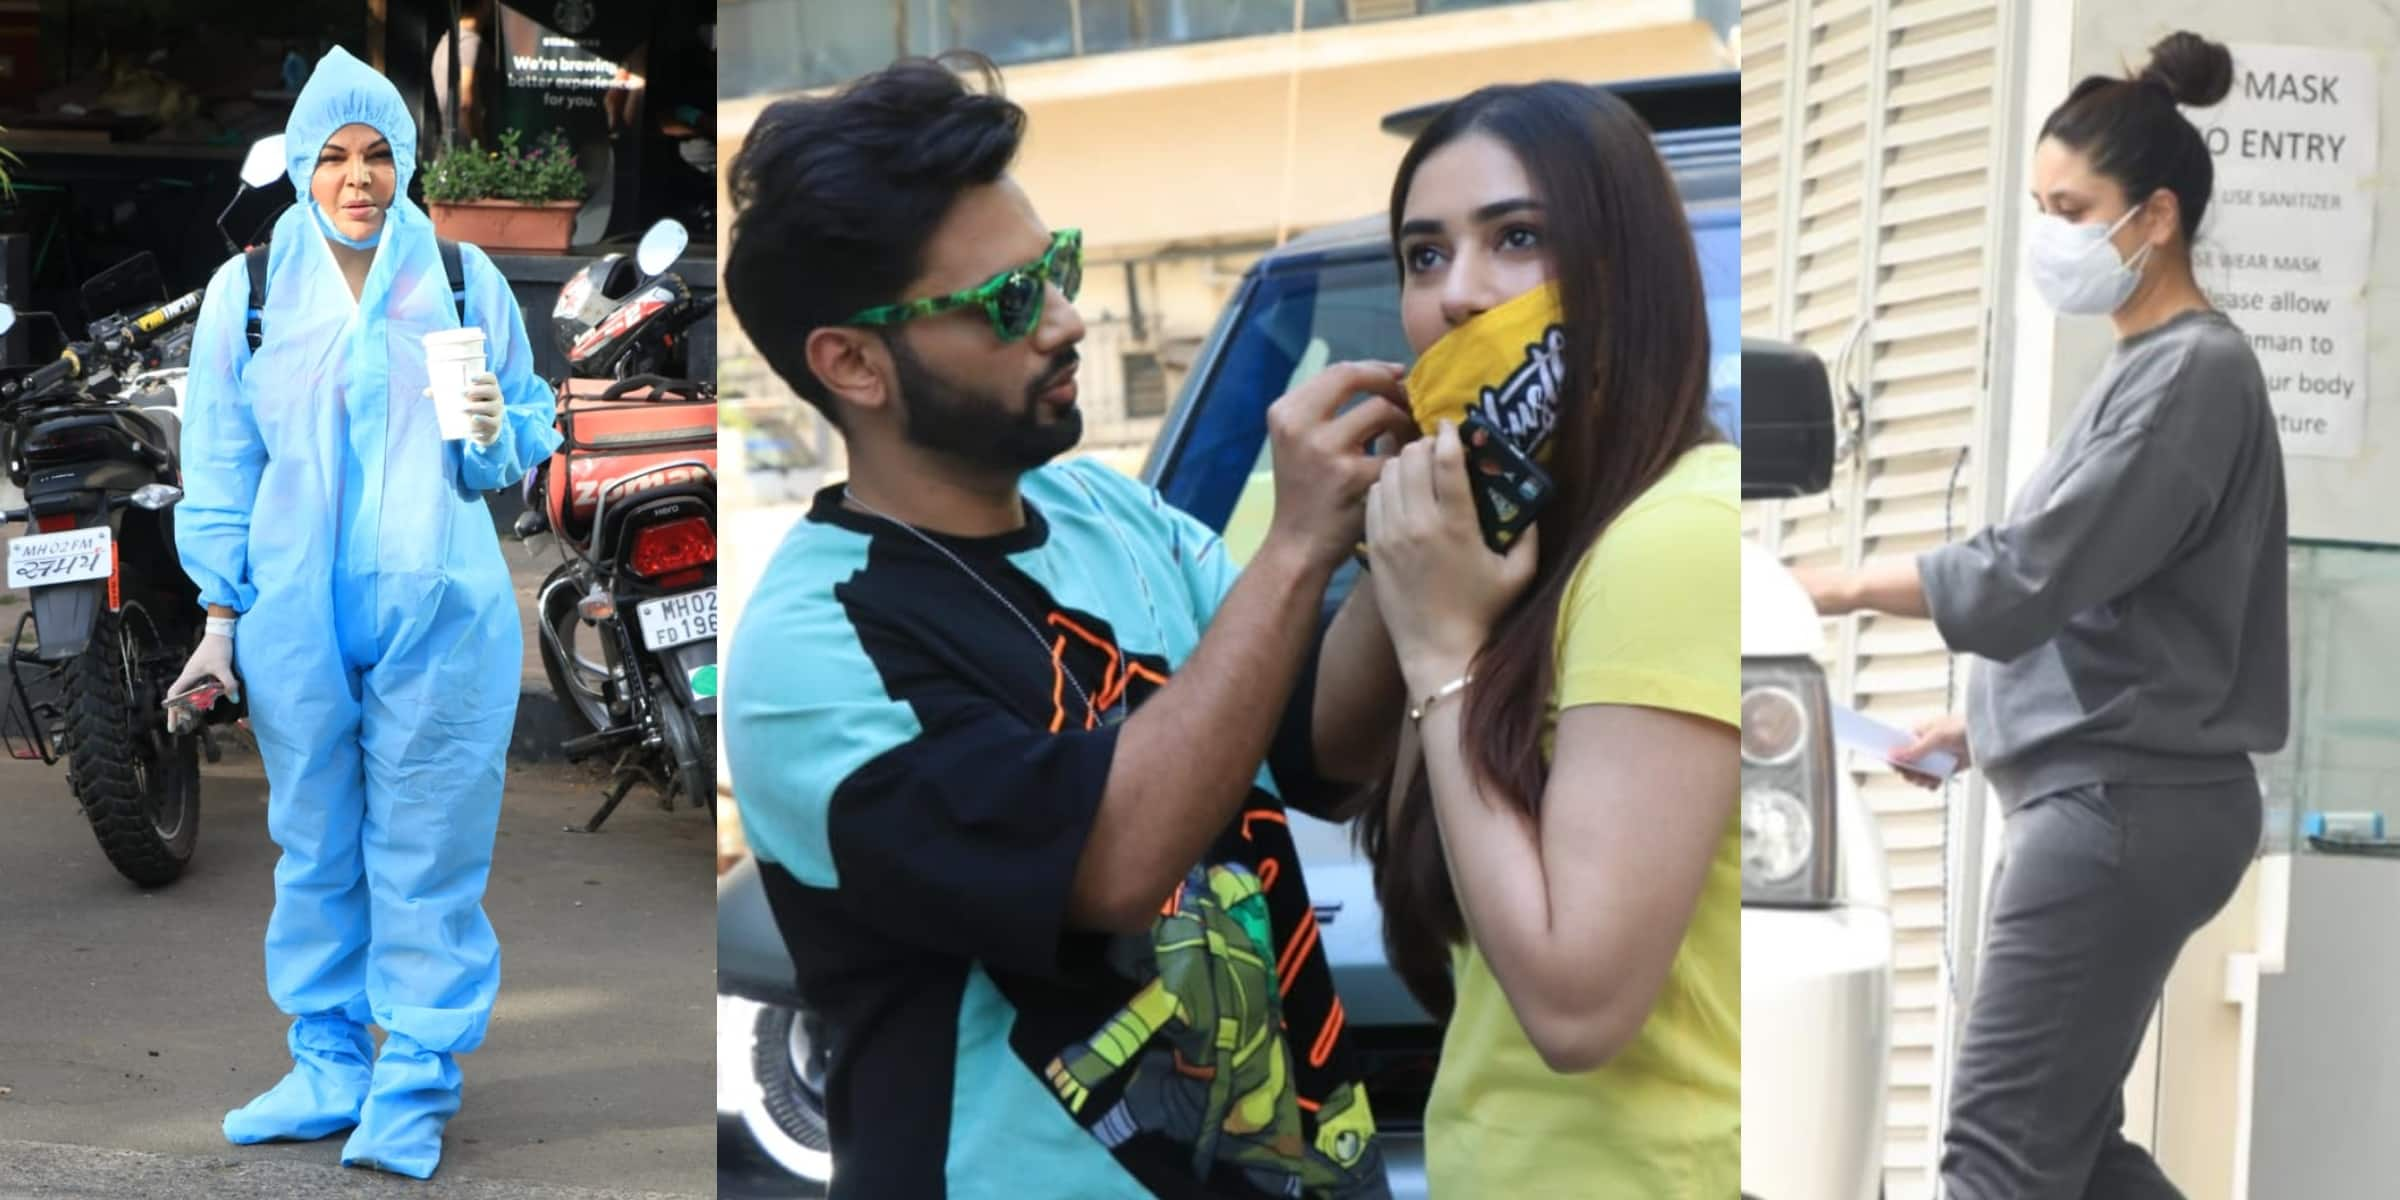 Spotted: Kareena Goes To A Clinic, Rahul Vaidya Helps Disha Take Off Her Mask, Rakhi Sawant Goes To Grab Coffee